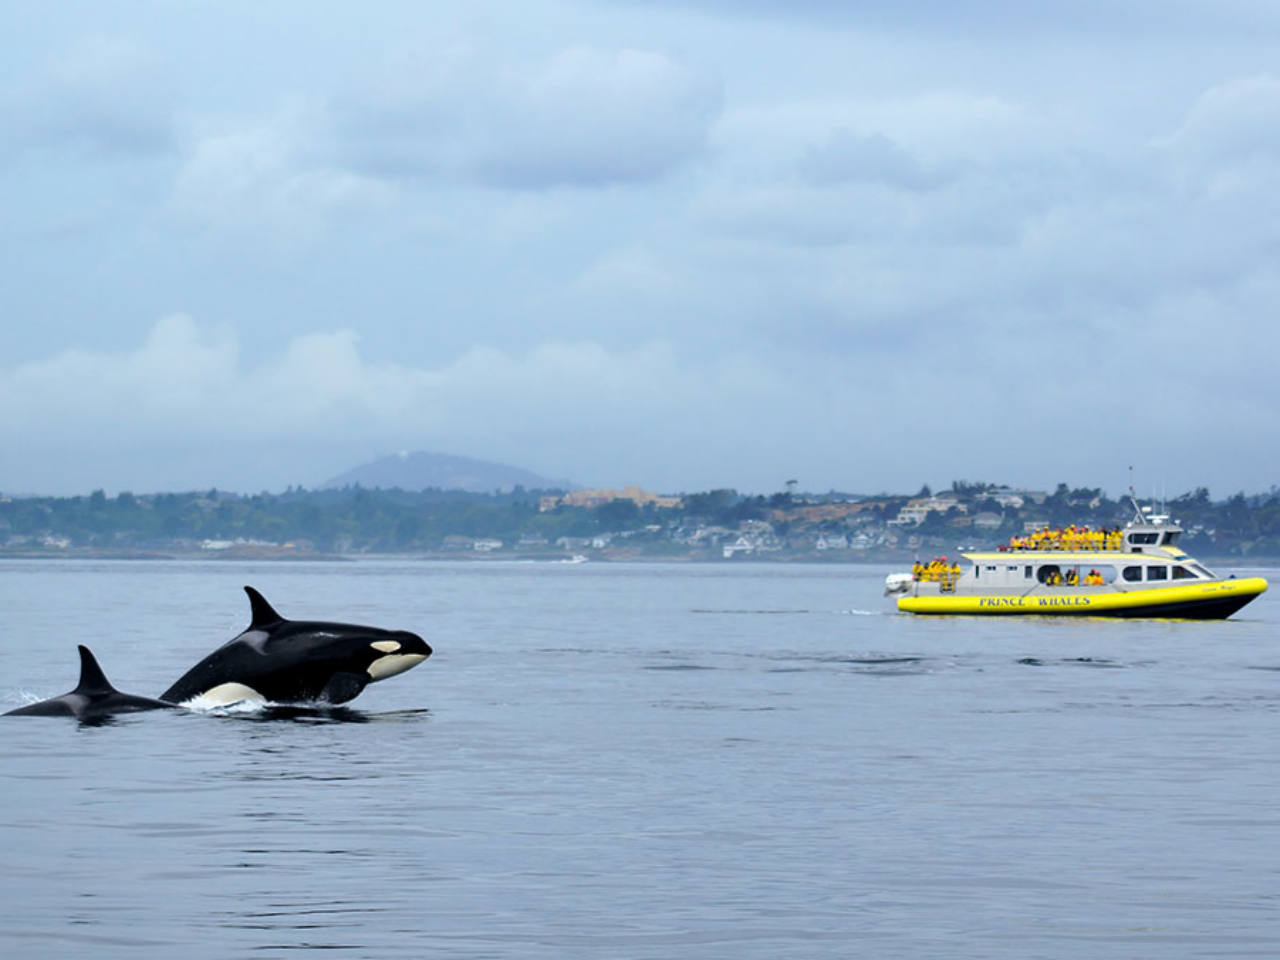 A whale watching boat behind two killer whales jumping in the ocean